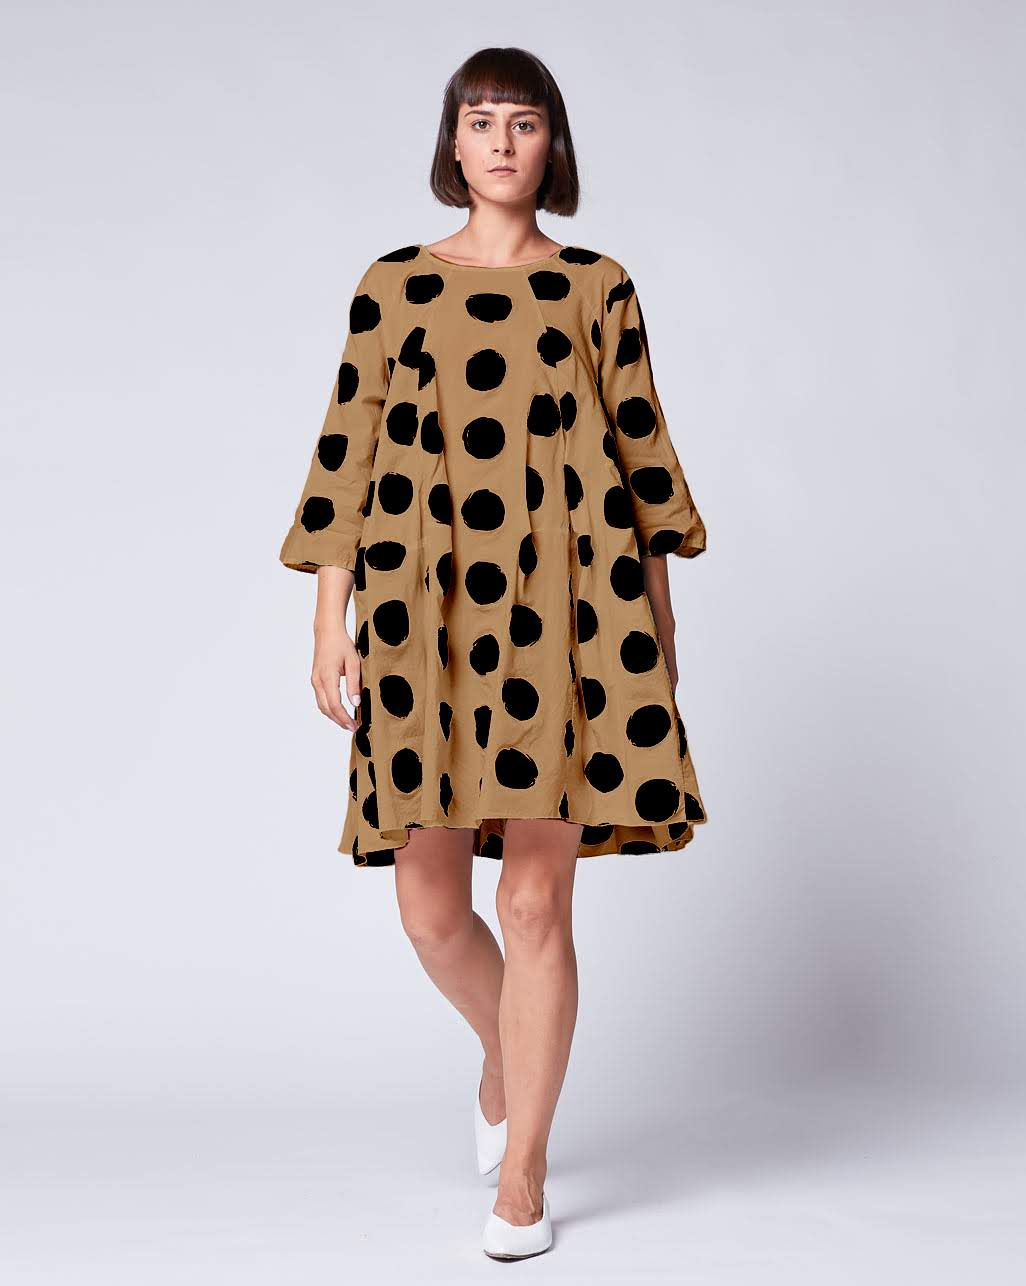 Polka Dot Babydoll Dress – Amici